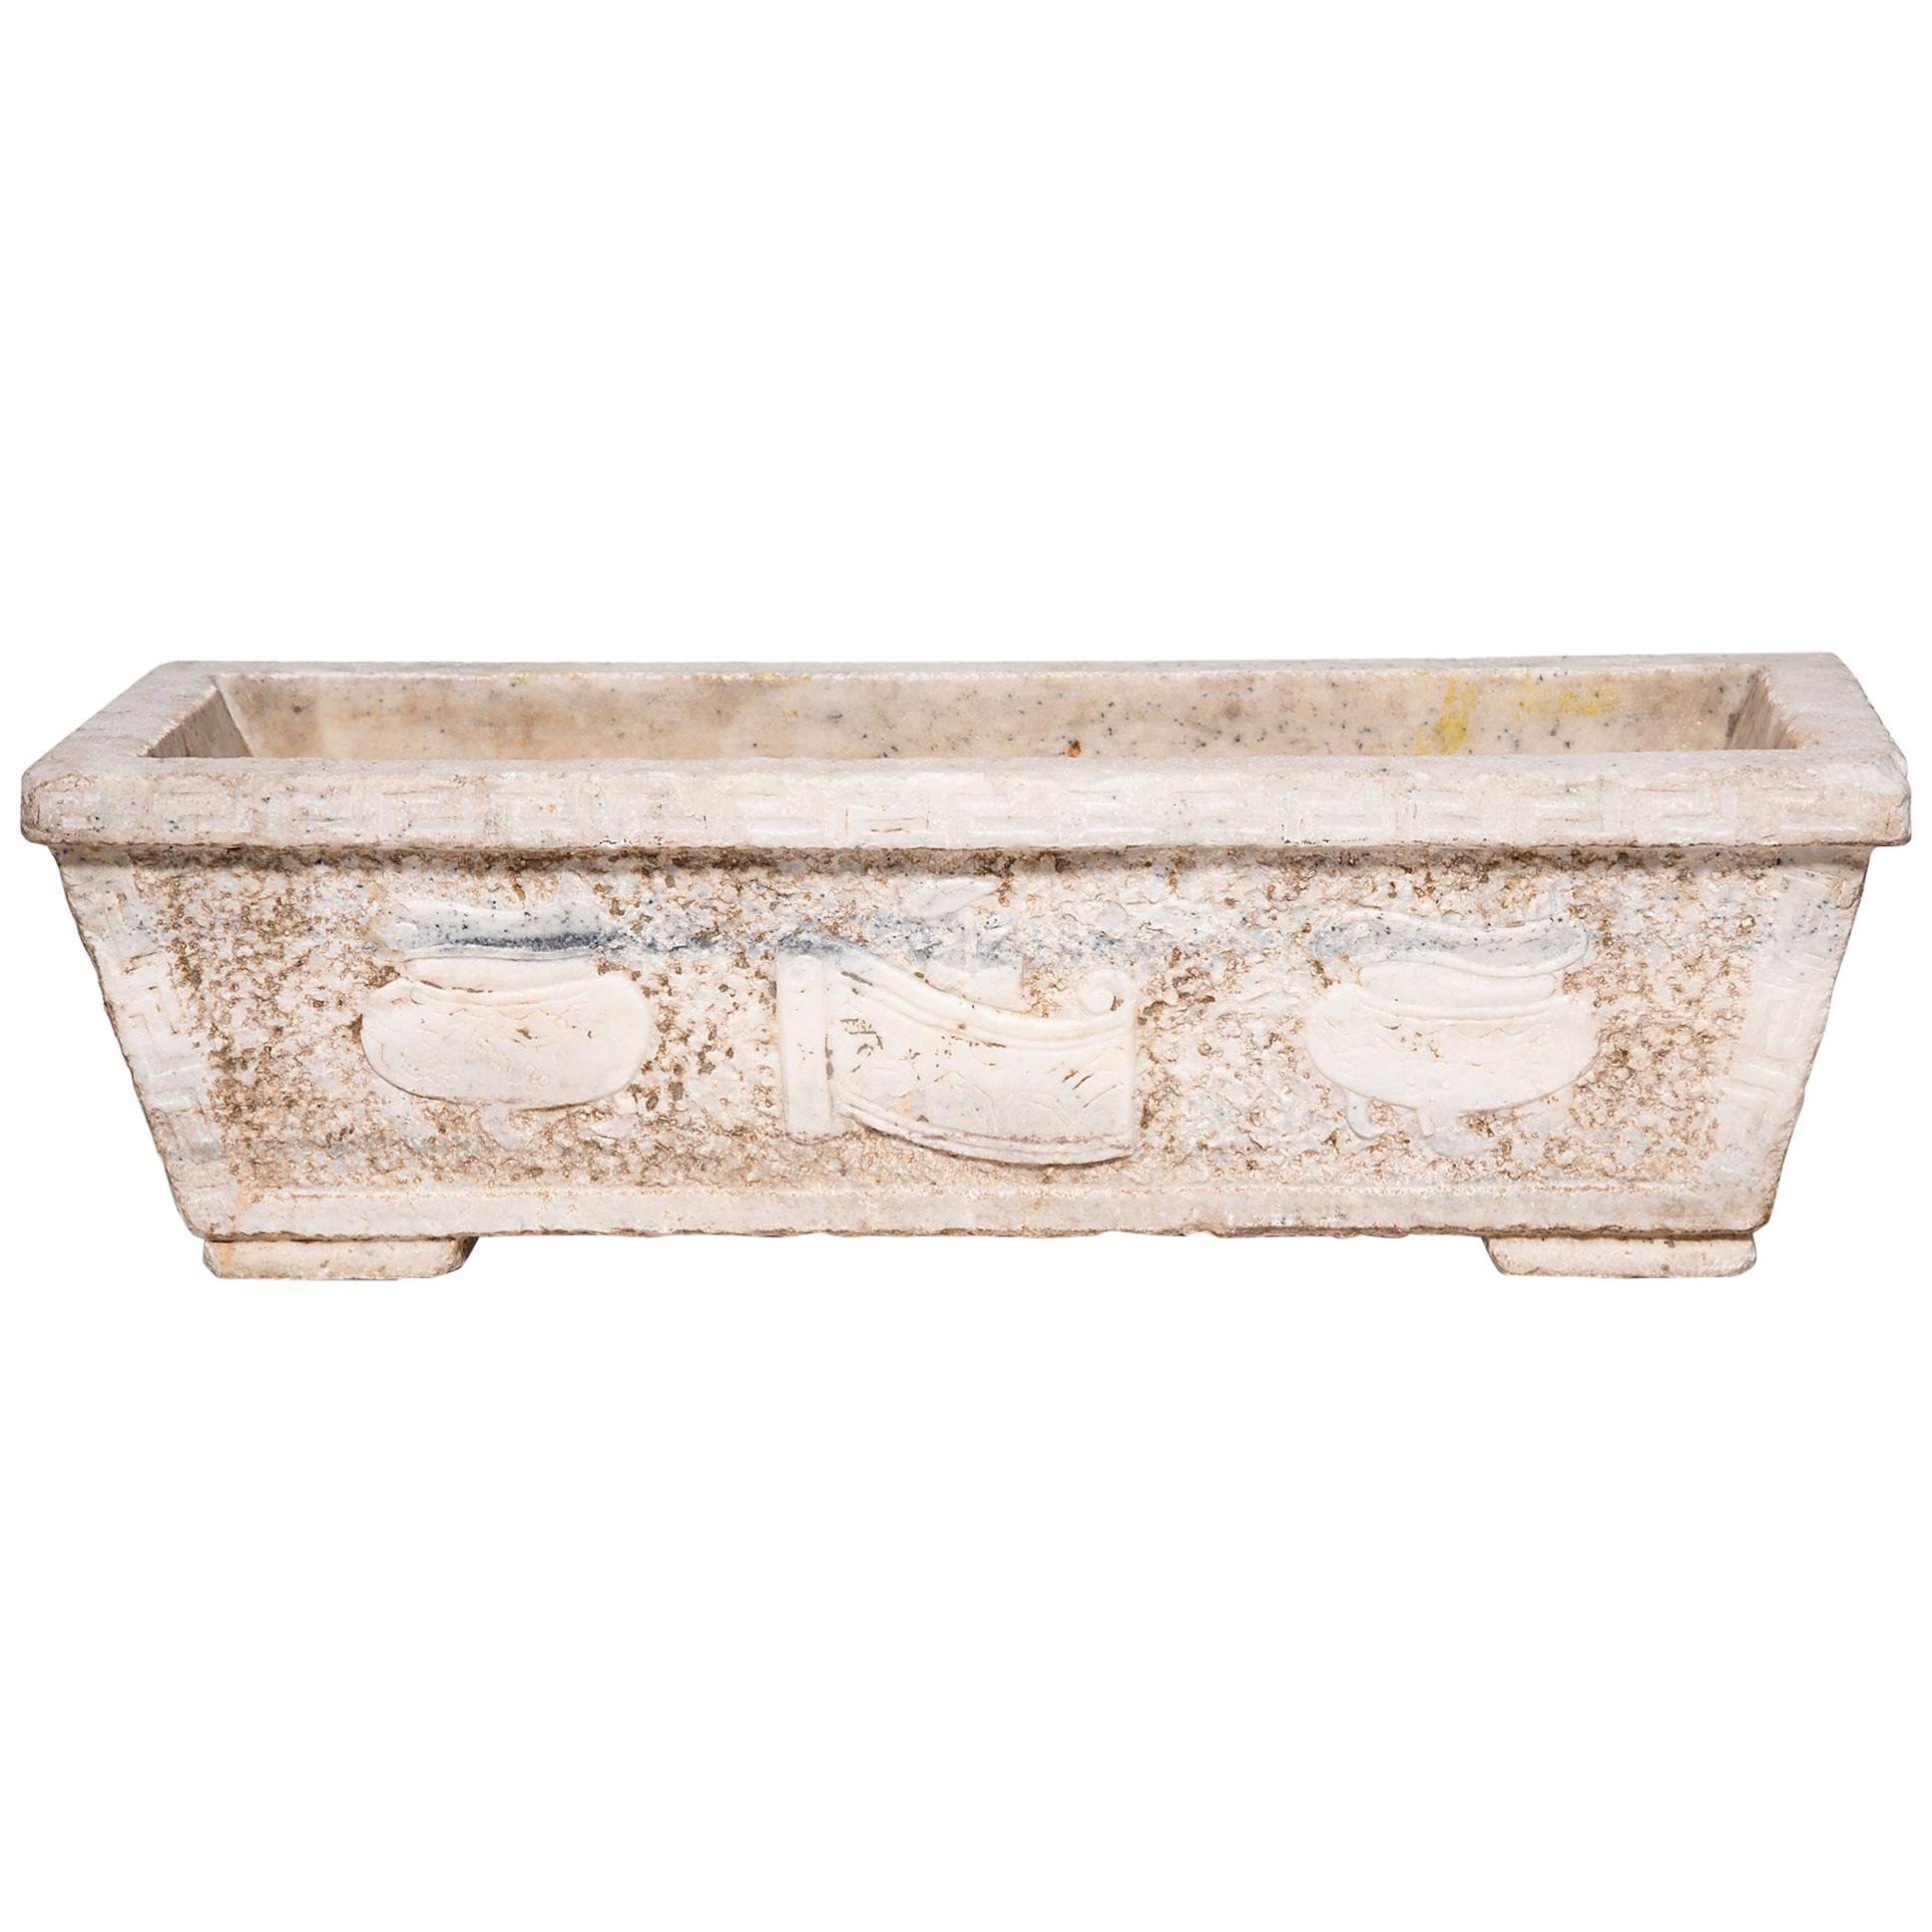 18th Century Chinese Shan Shui Marble Trough